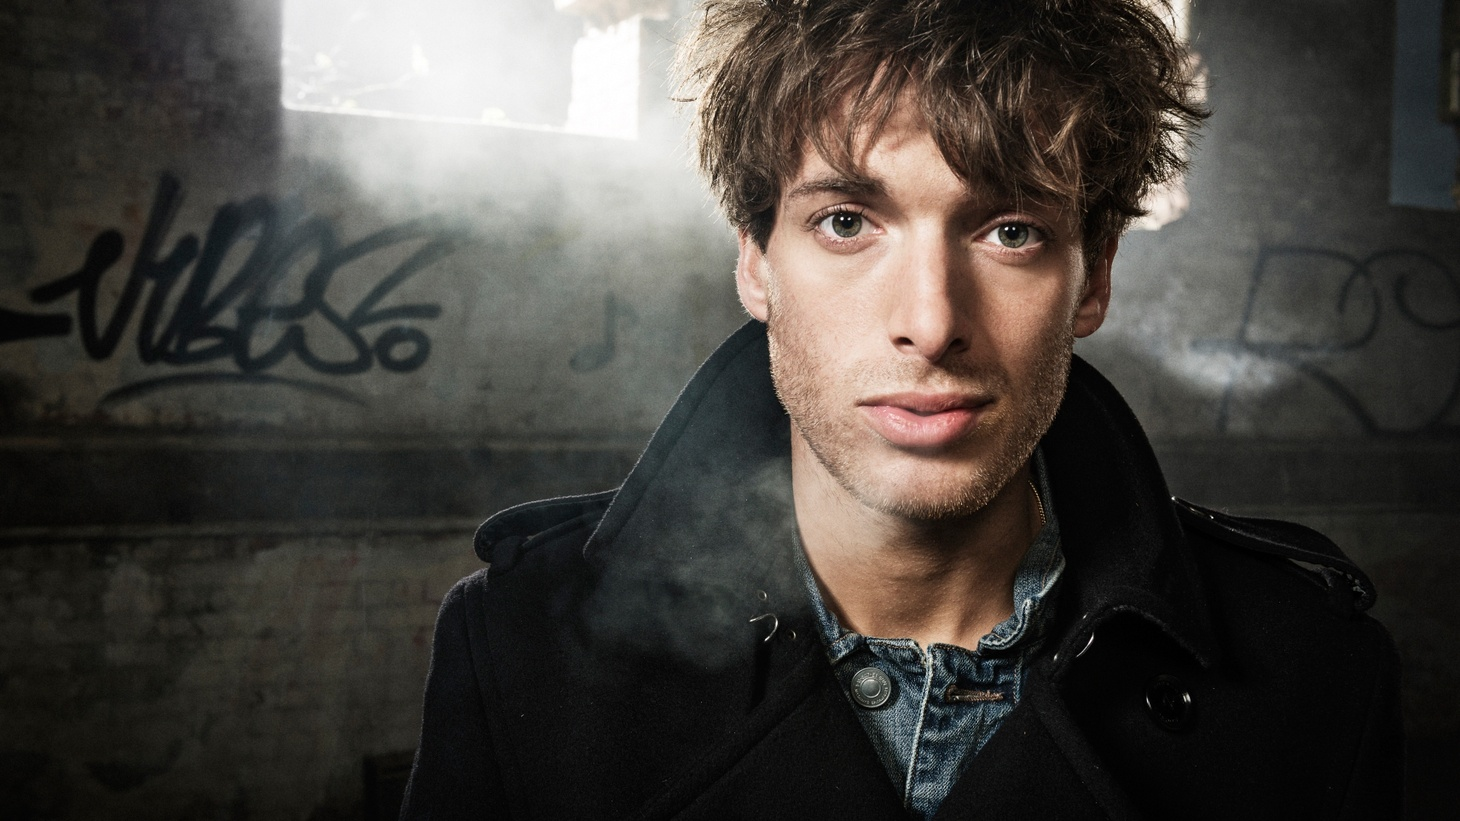 If you just heard his name, you might thing he's an Italian pop star, but Scottish multi-platinum singer/songwriter Paolo Nutini is more of a chameleon on his latest album.